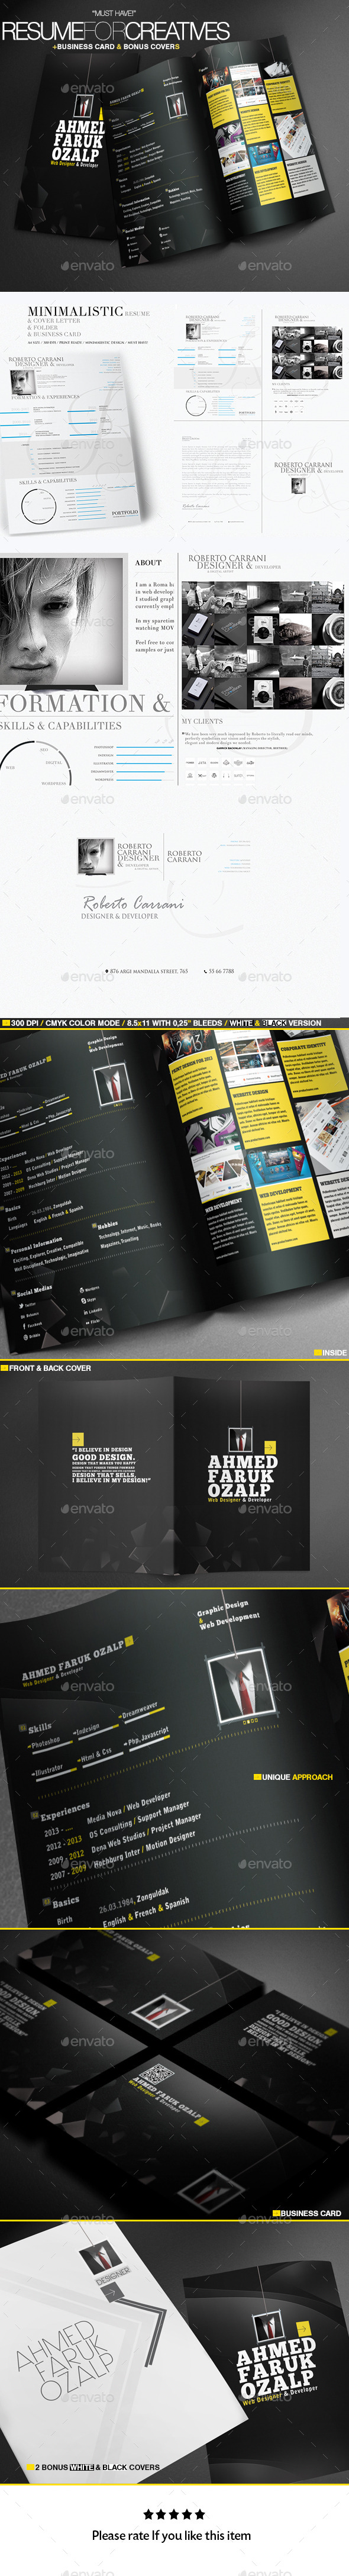 GraphicRiver A Great Deal Creative Resume Templates 2in1 11212016